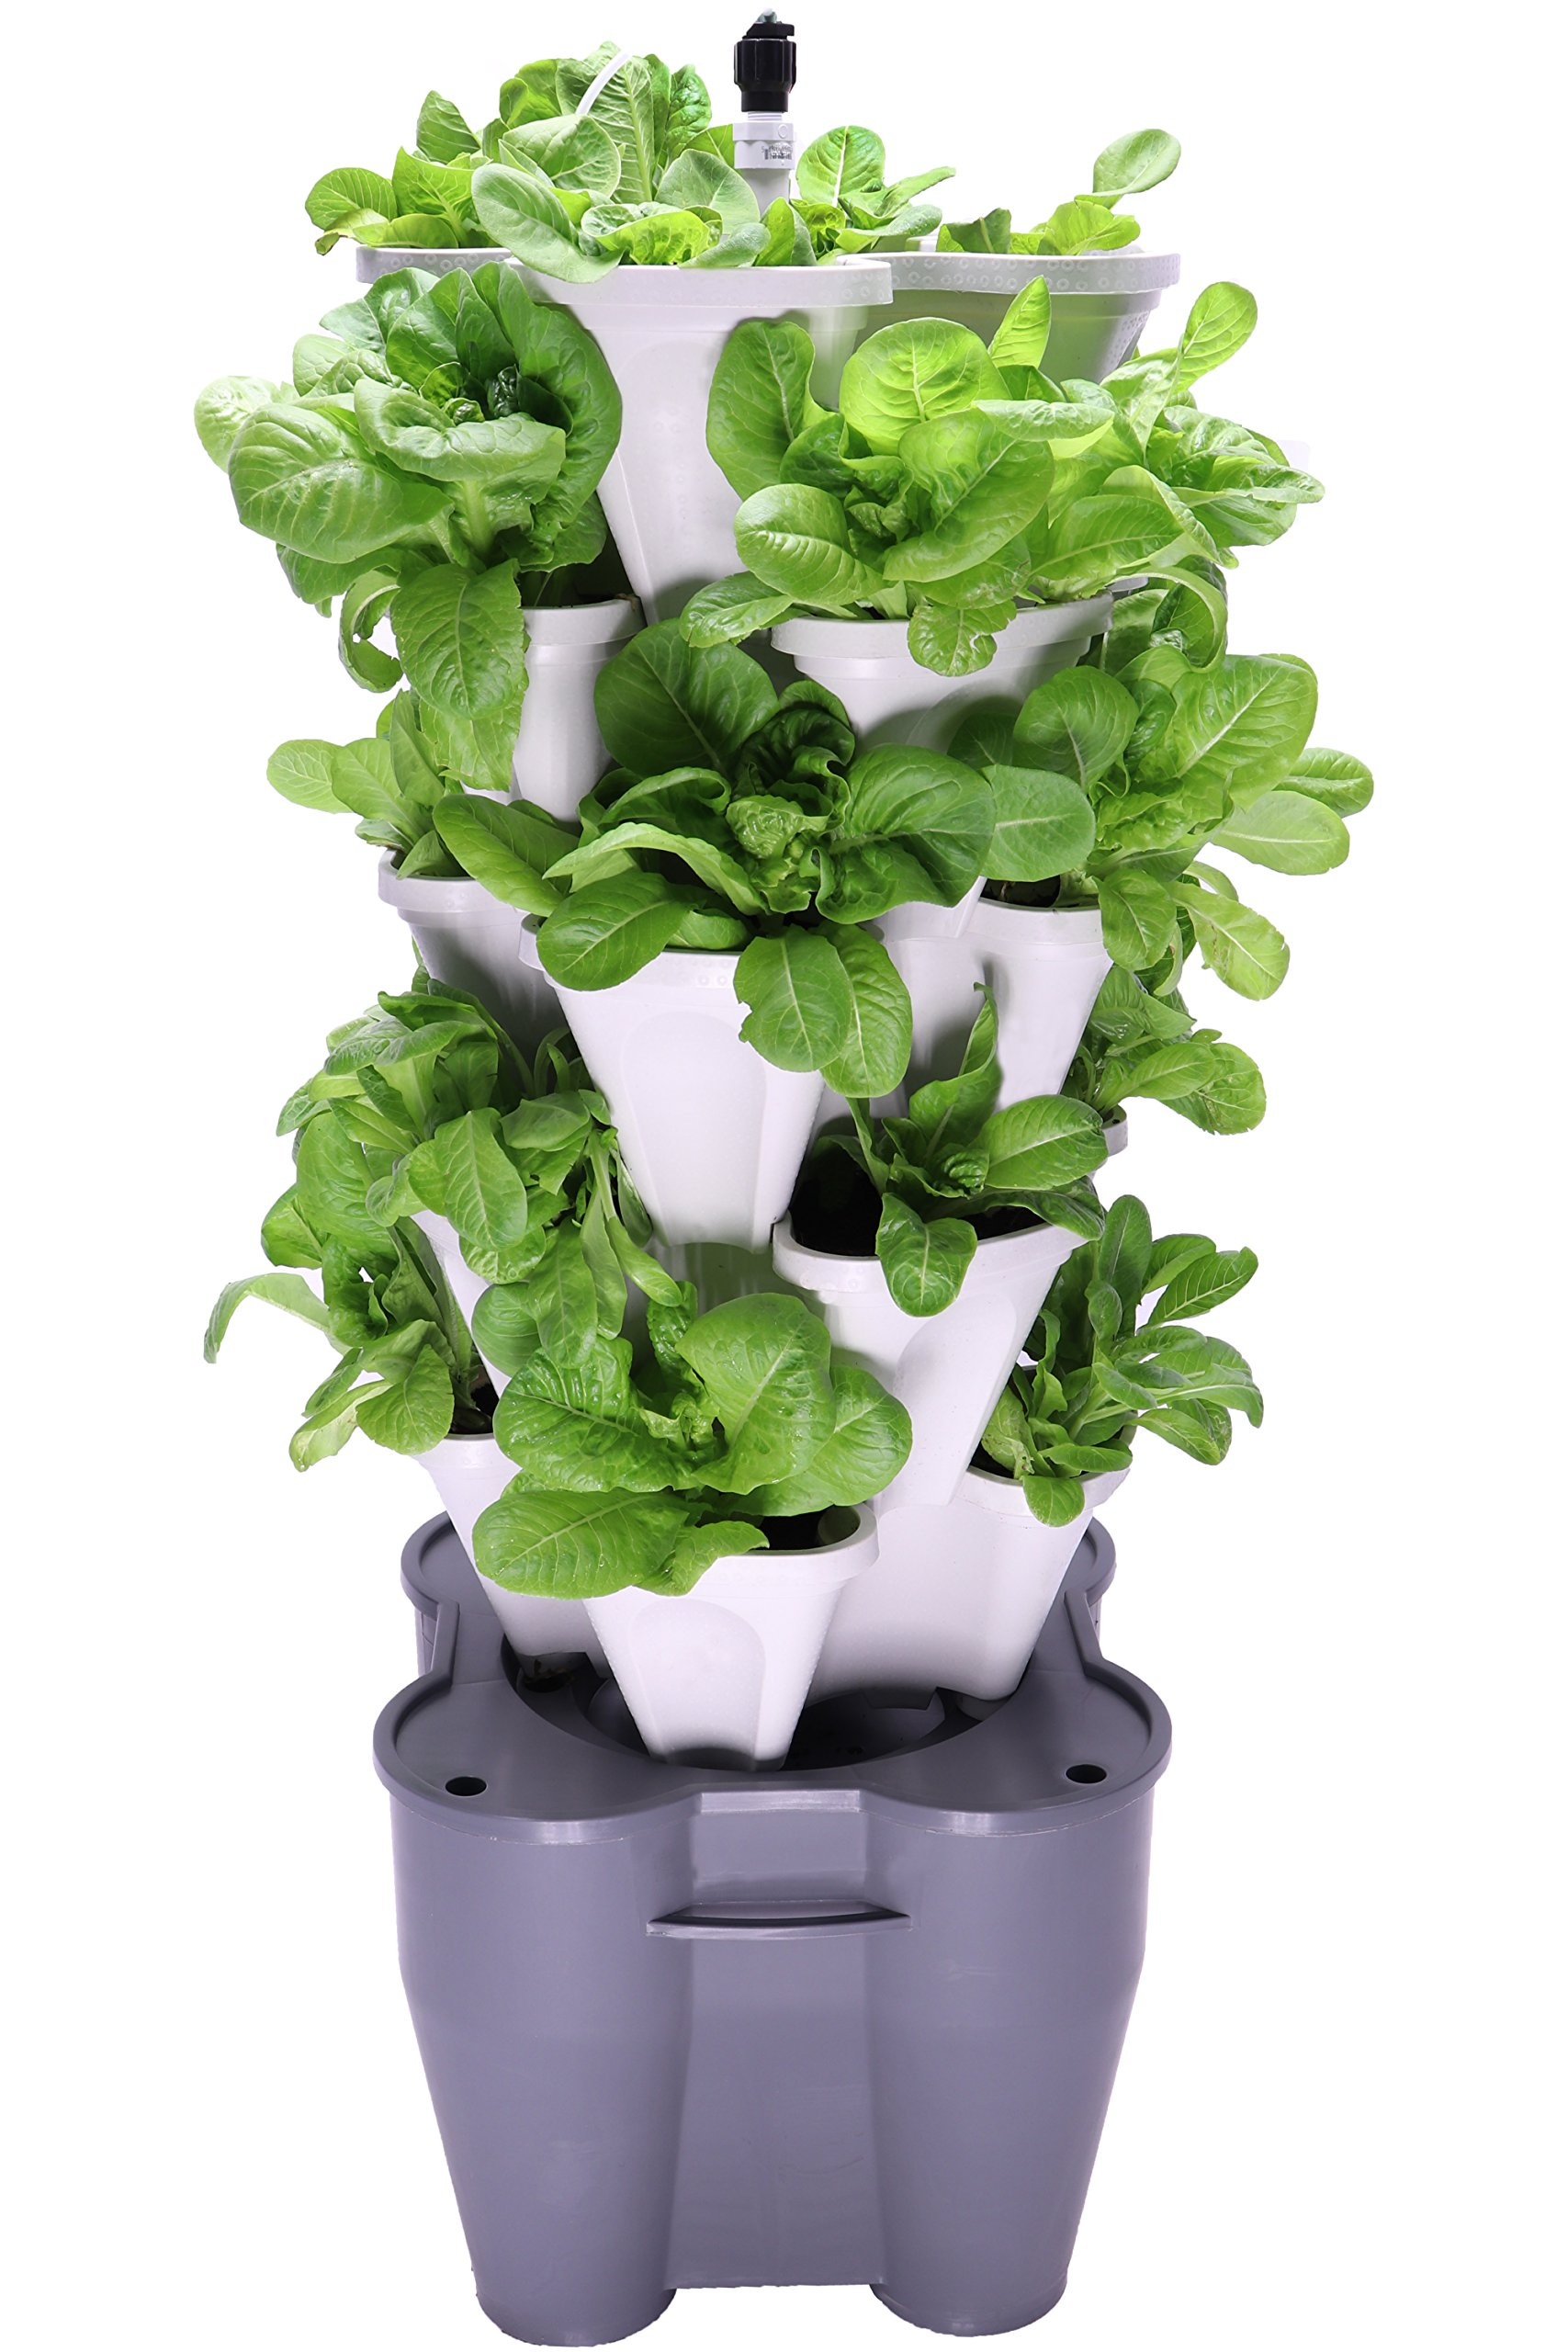 Smart Farm - Automatic Self Watering Garden - Grow Fresh Healthy Food Virtually Anywhere Year Round - Soil or Hydroponic Vertical Tower Gardening System By Mr Stacky (Standard Kit, Stone)